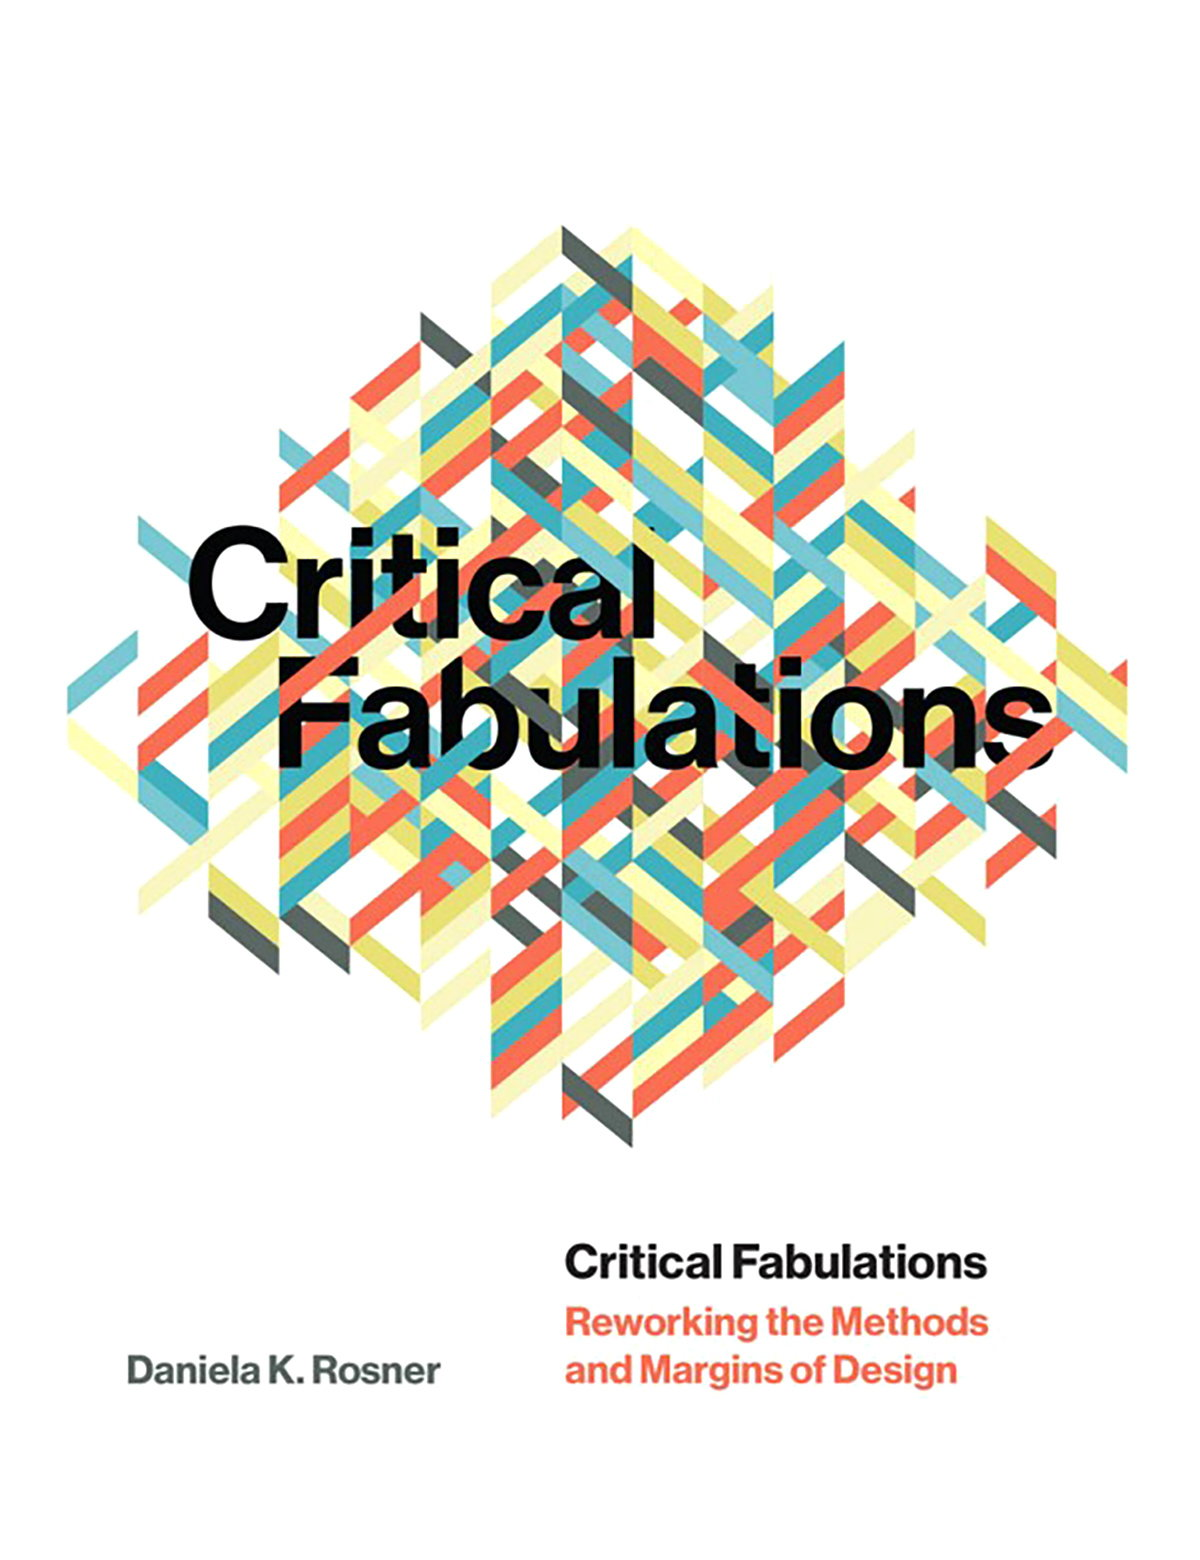 Critical Fabulations - Reworking the Methods and Margins of Design